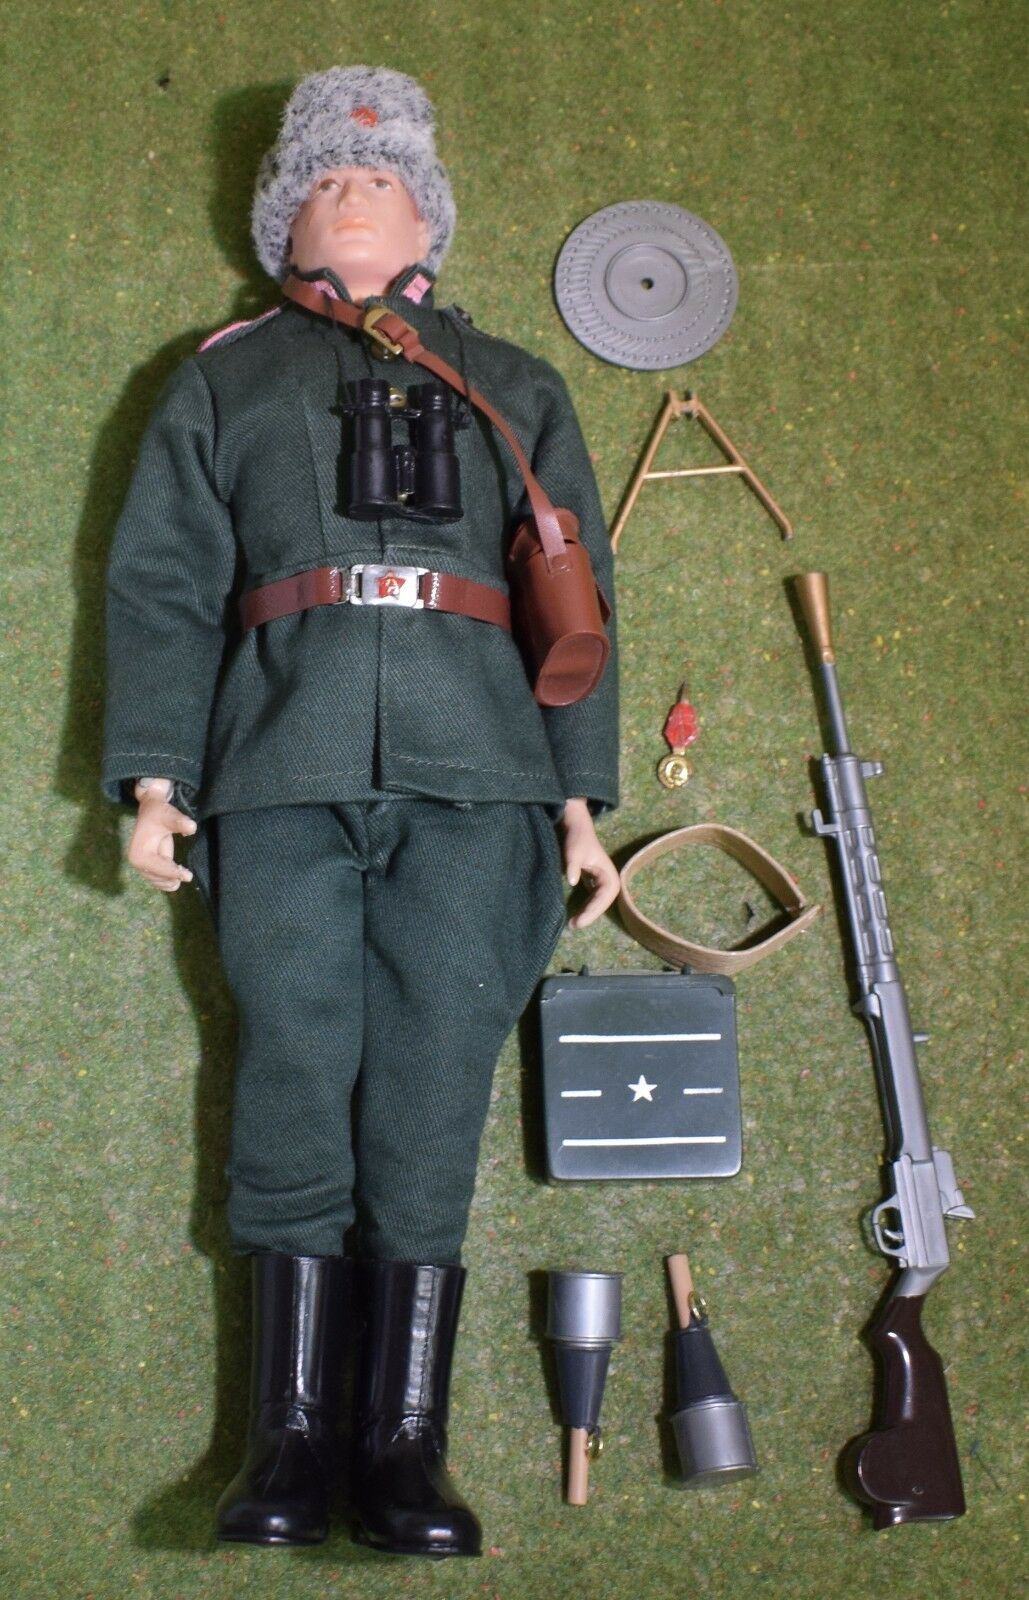 ORIGINAL VINTAGE ACTION MAN LOOSE RUSSIAN INFANTRYMAN - 194